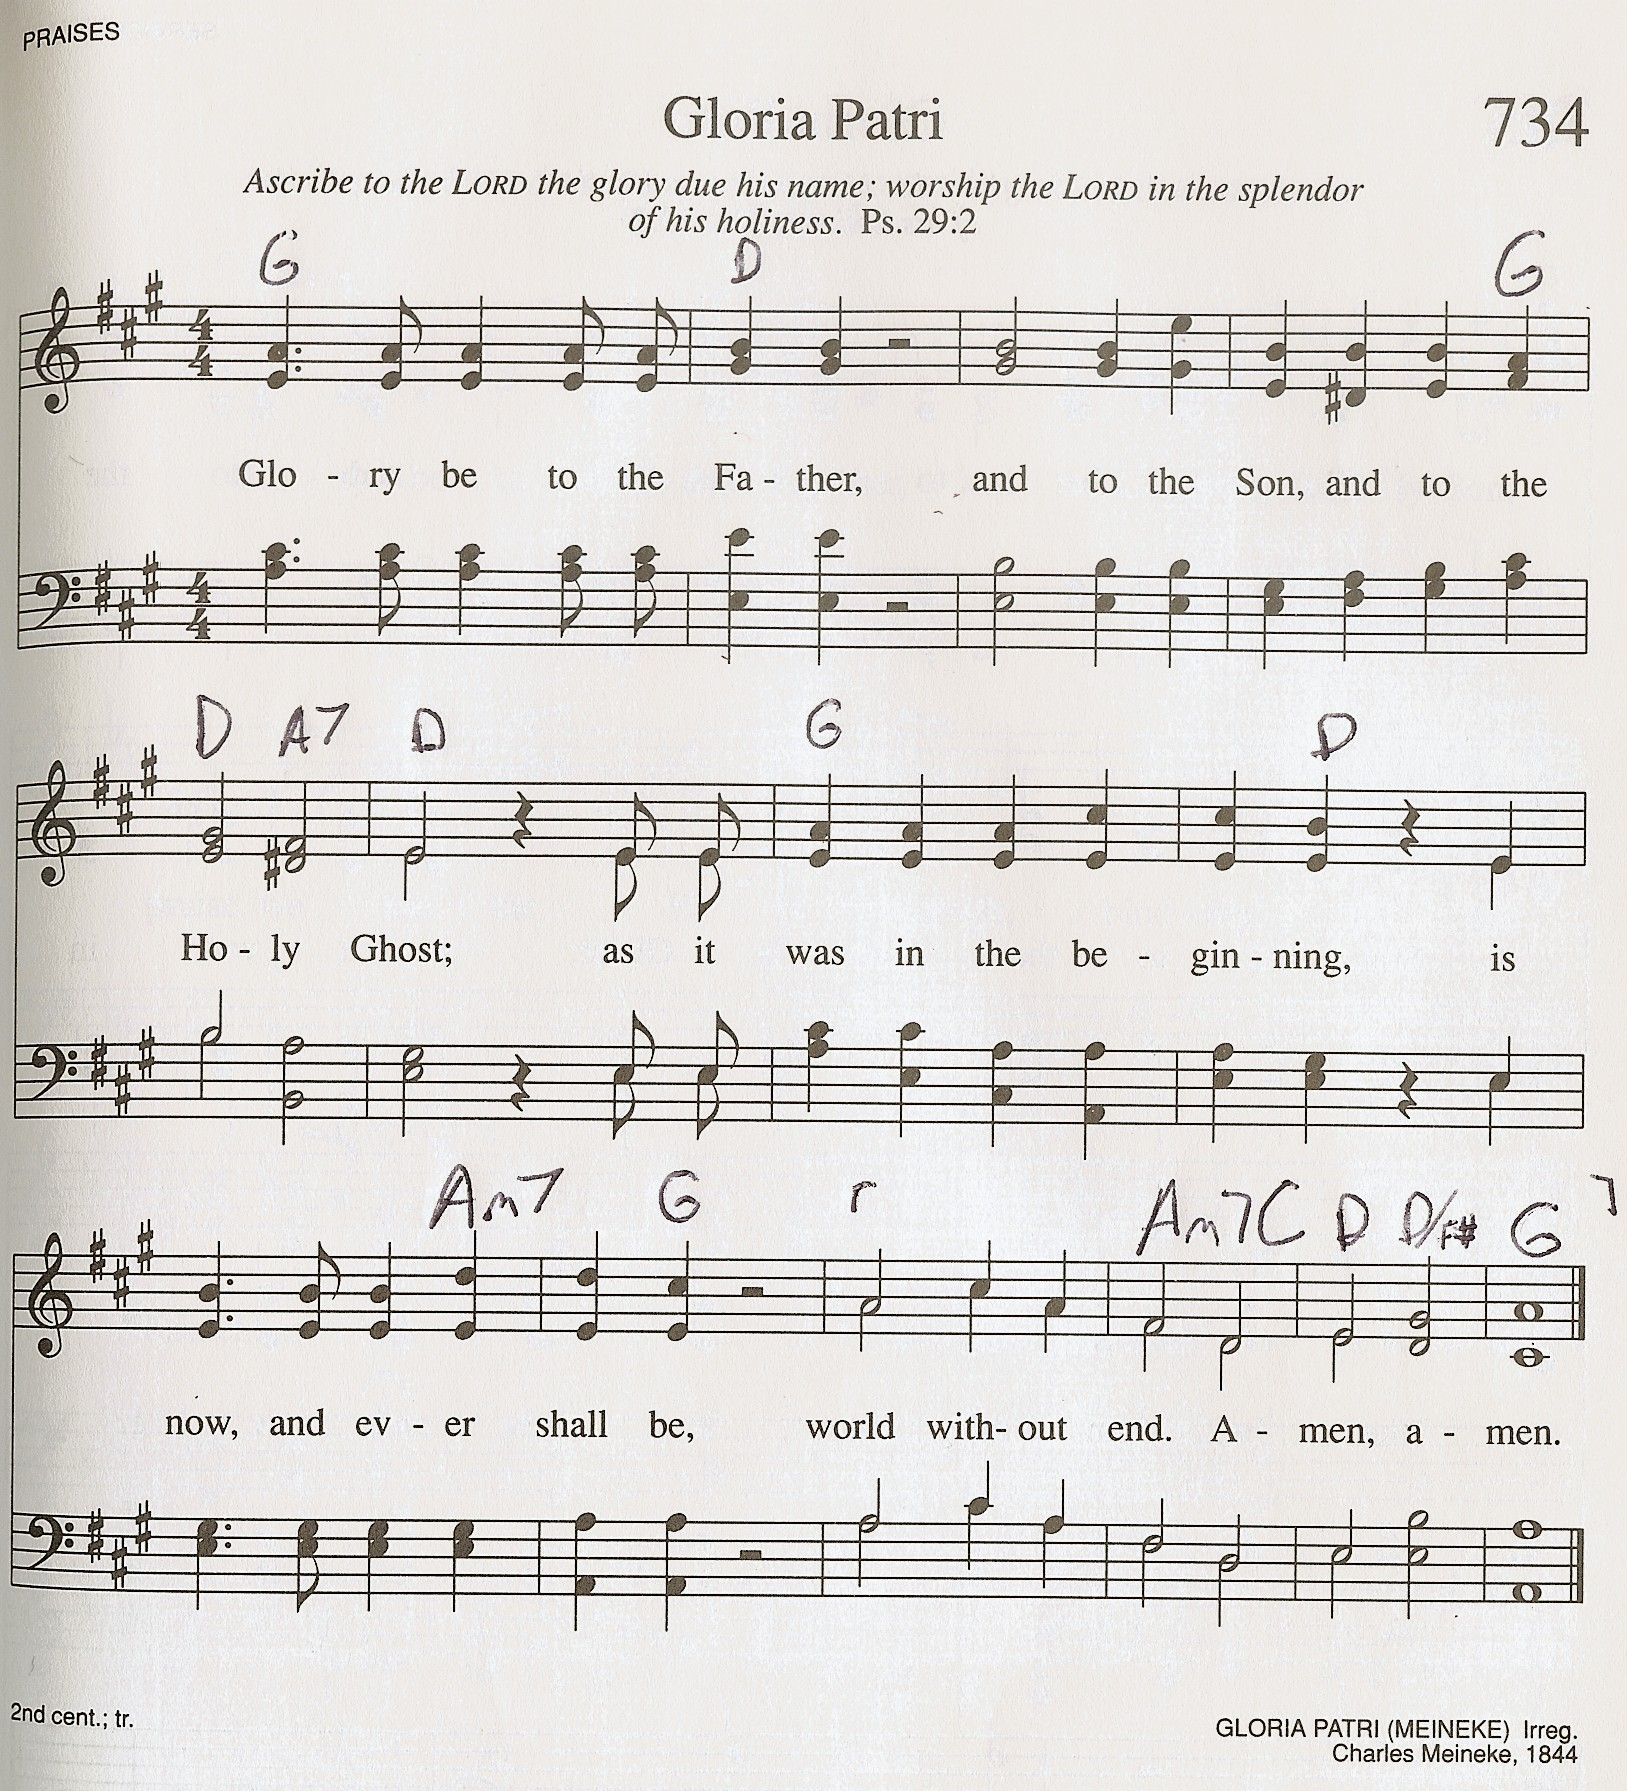 Hallelujah Salvation And Glory Chords Images Piano Chord Chart